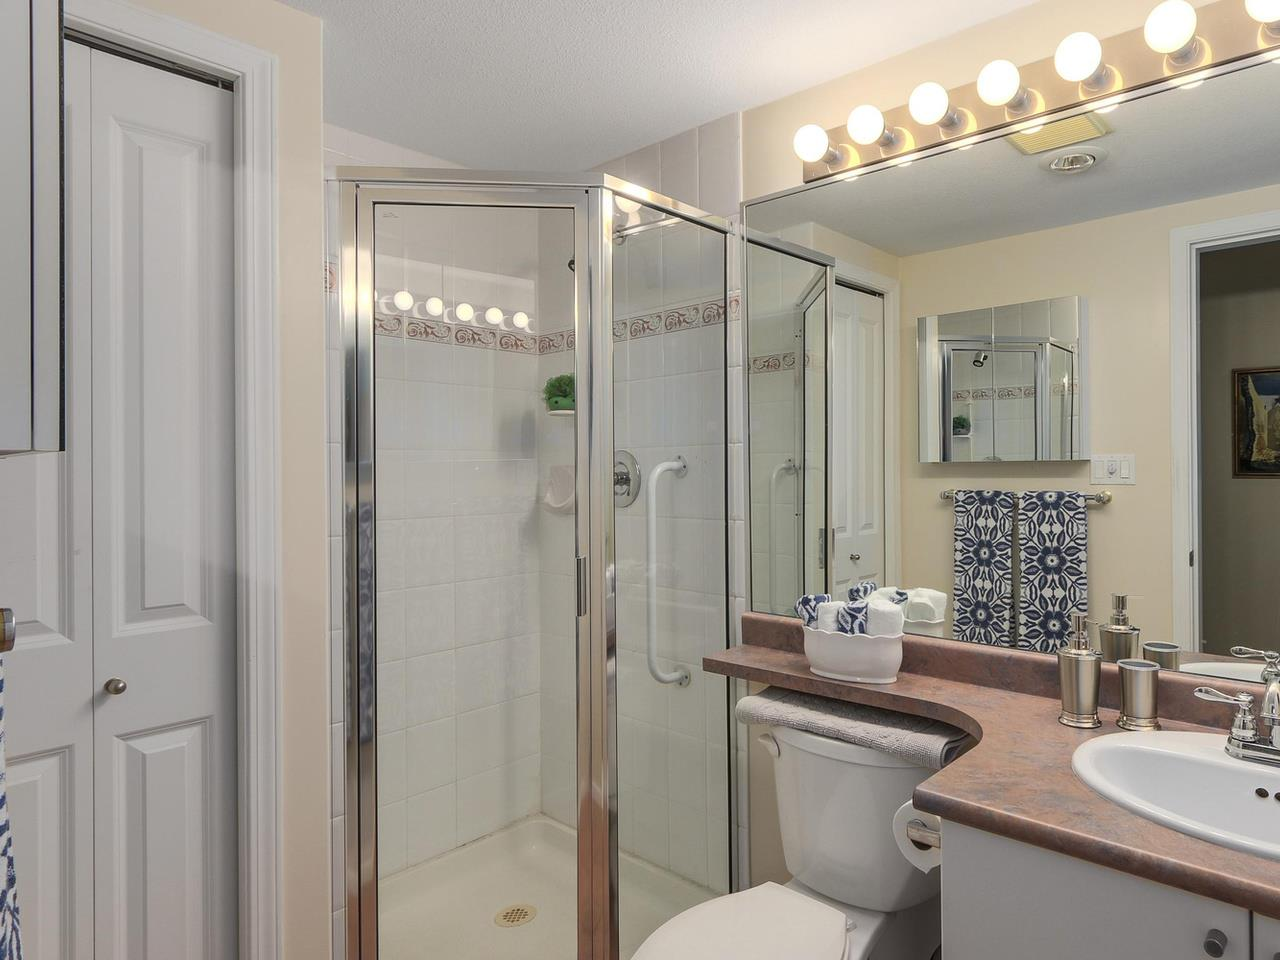 "Photo 5: 410 260 NEWPORT Drive in Port Moody: North Shore Pt Moody Condo for sale in ""THE MCNAIR"" : MLS(r) # R2130250"